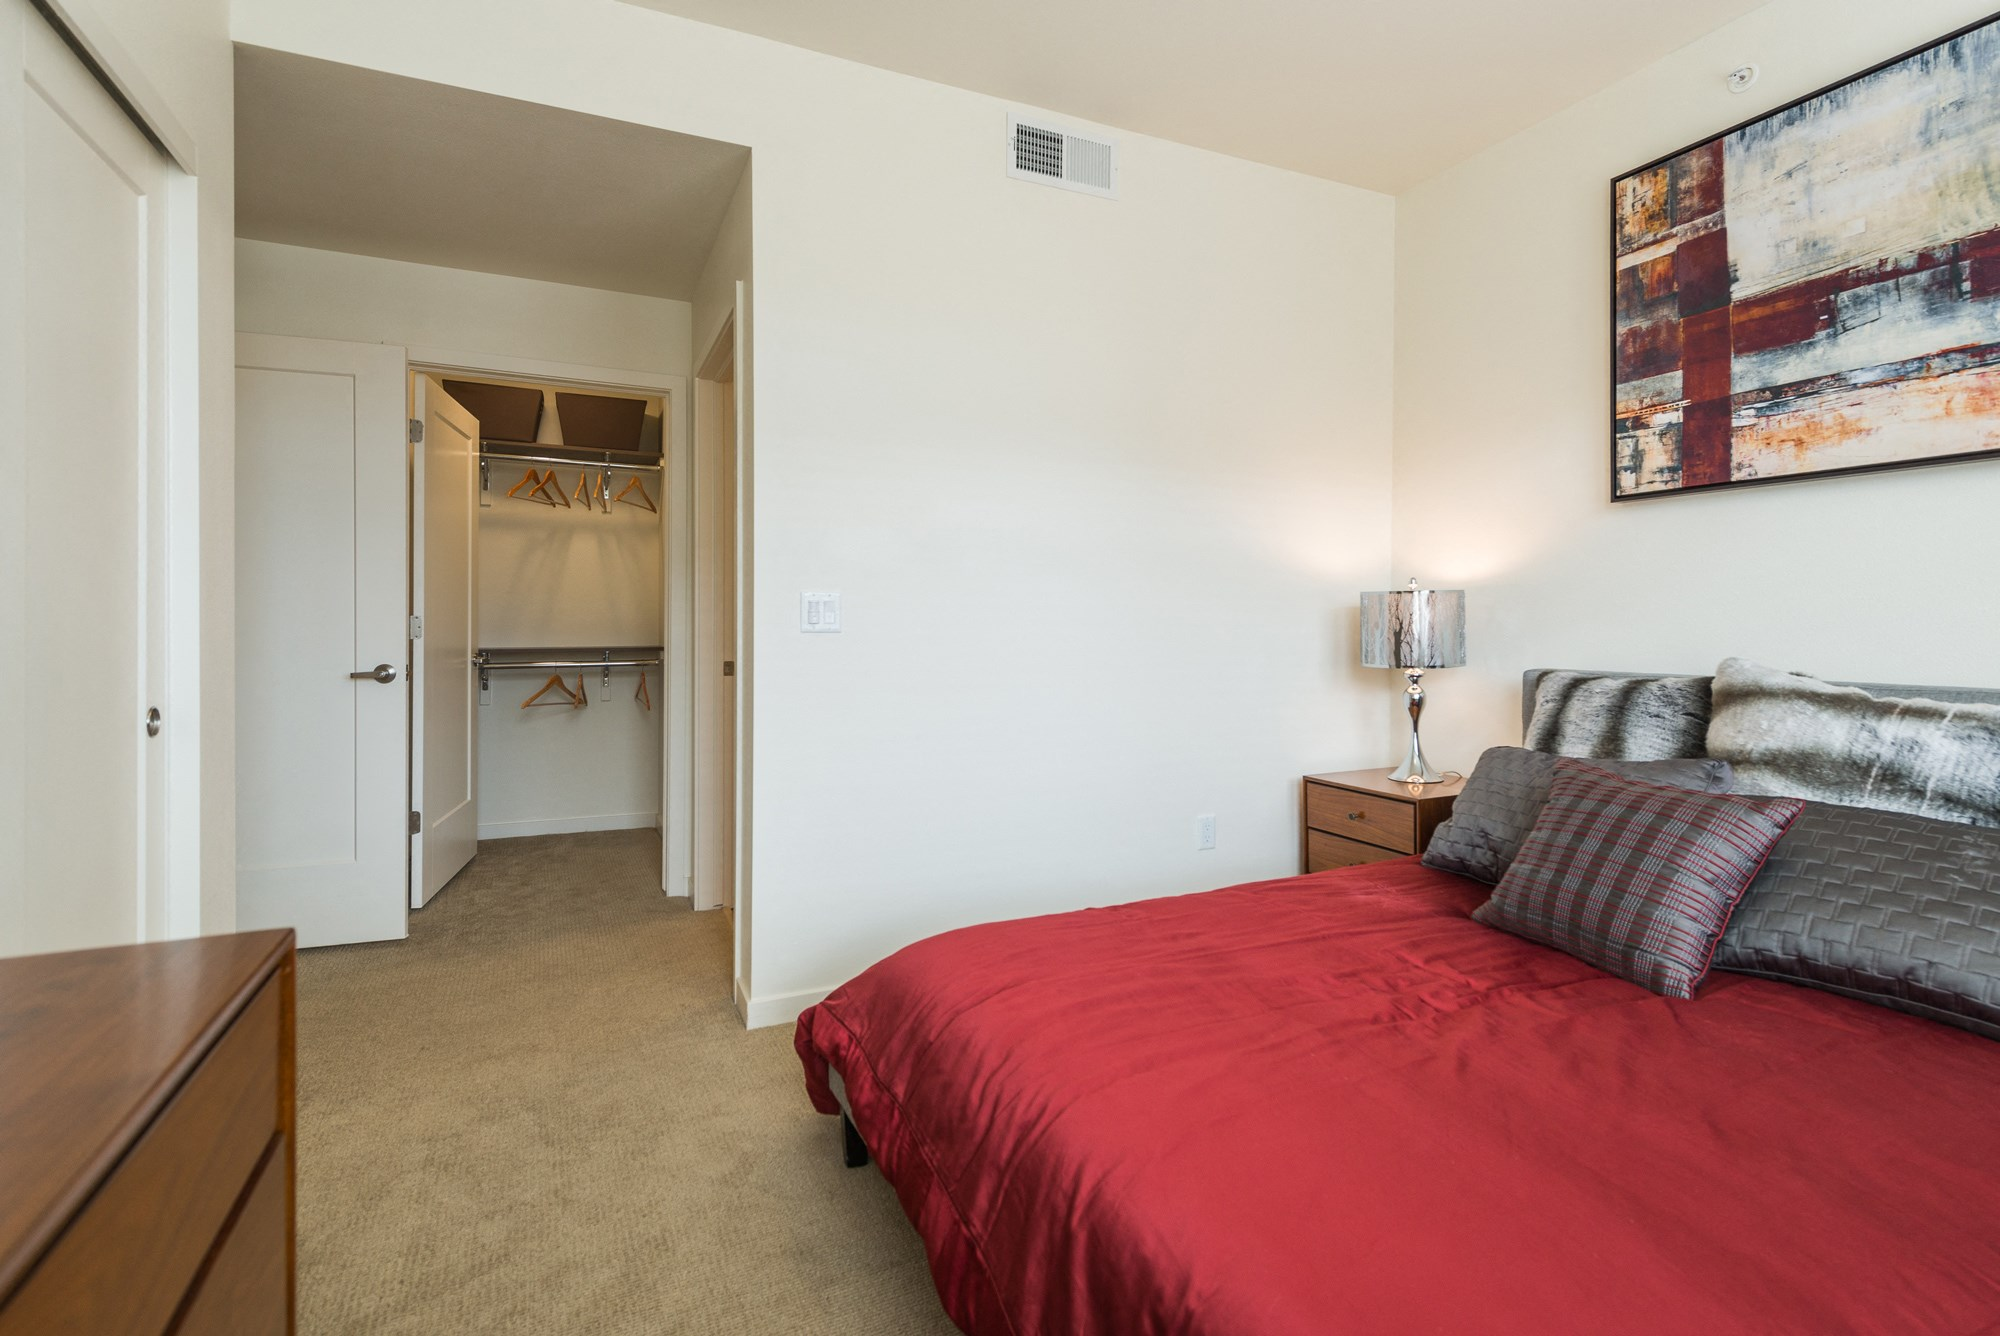 Bedroom at 8000 Uptown Apartments in Broomfield, CO